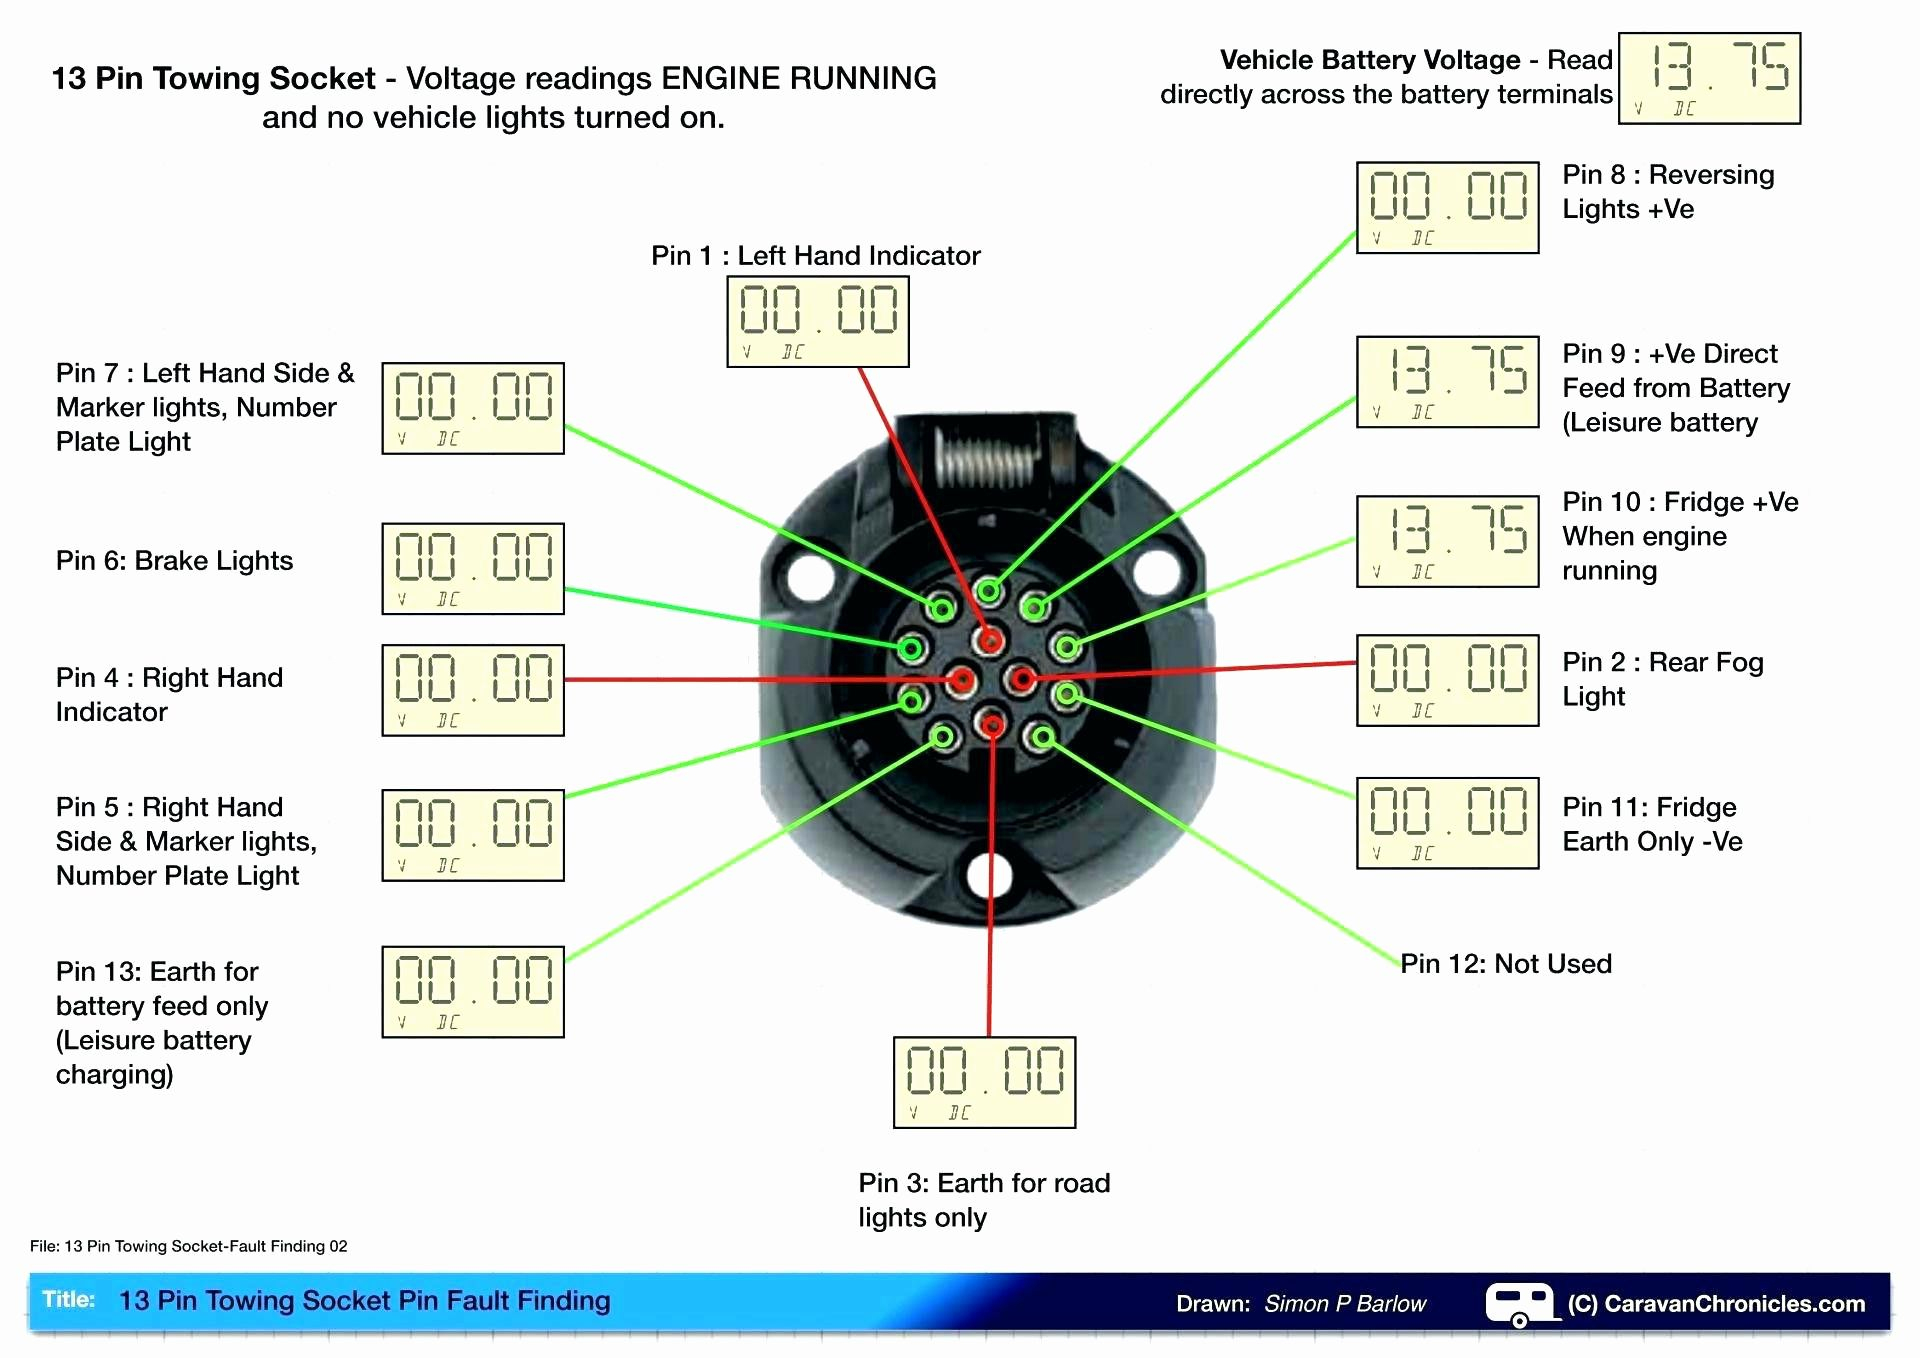 Big Tex Wiring Schematic | Best Wiring Library - Wiring Diagram For Big Tex Trailer